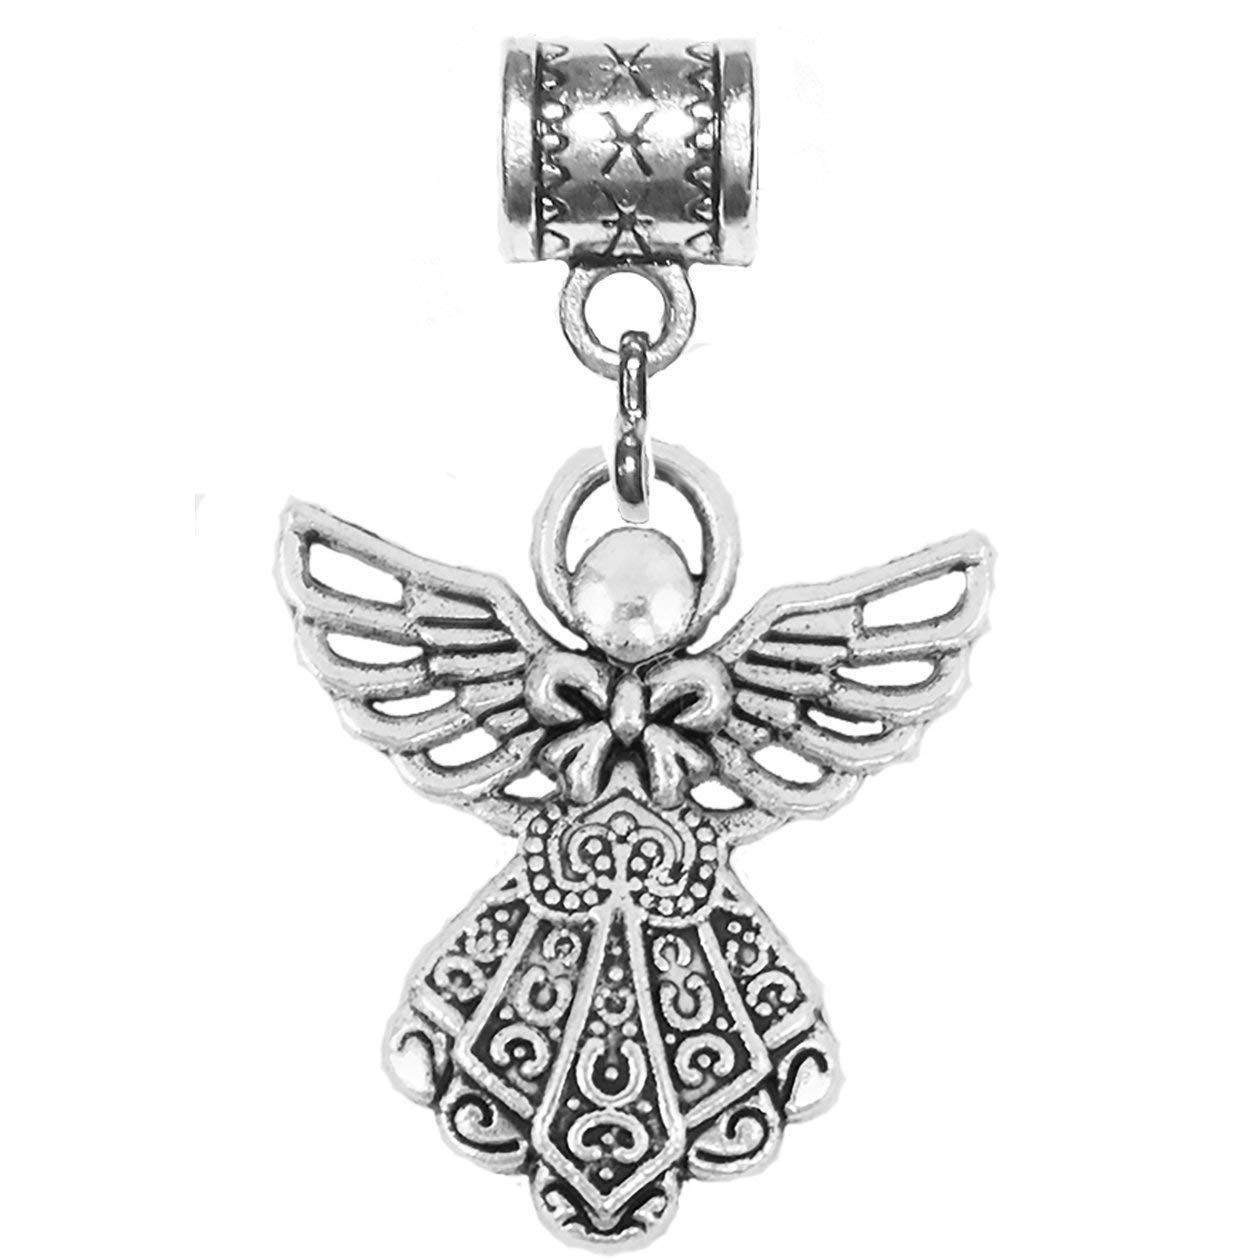 or add to neck chains or key chains Angel charm in antique silver by Mossy Cabin for large hole snake chain charm bracelets